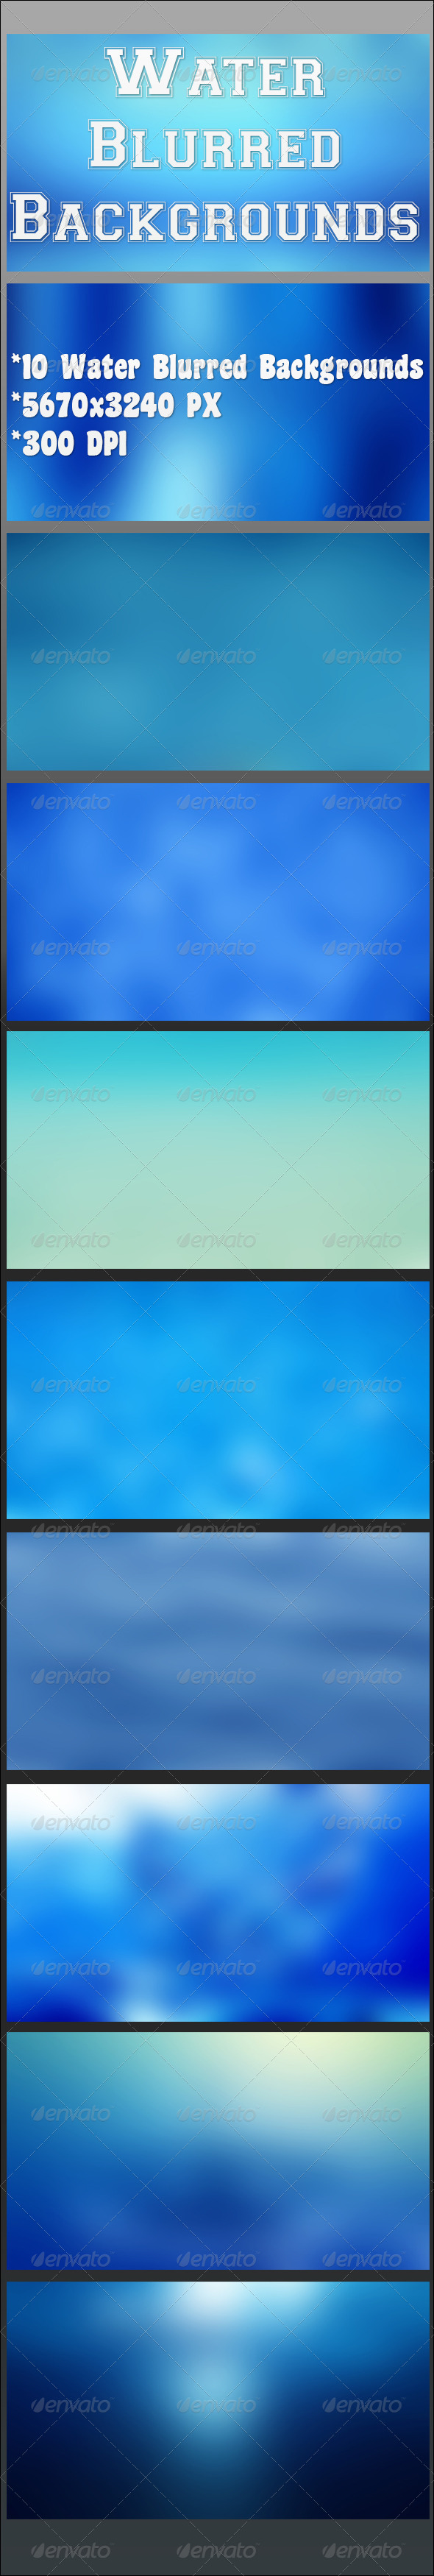 GraphicRiver Water Blurred Backgrounds 6812443